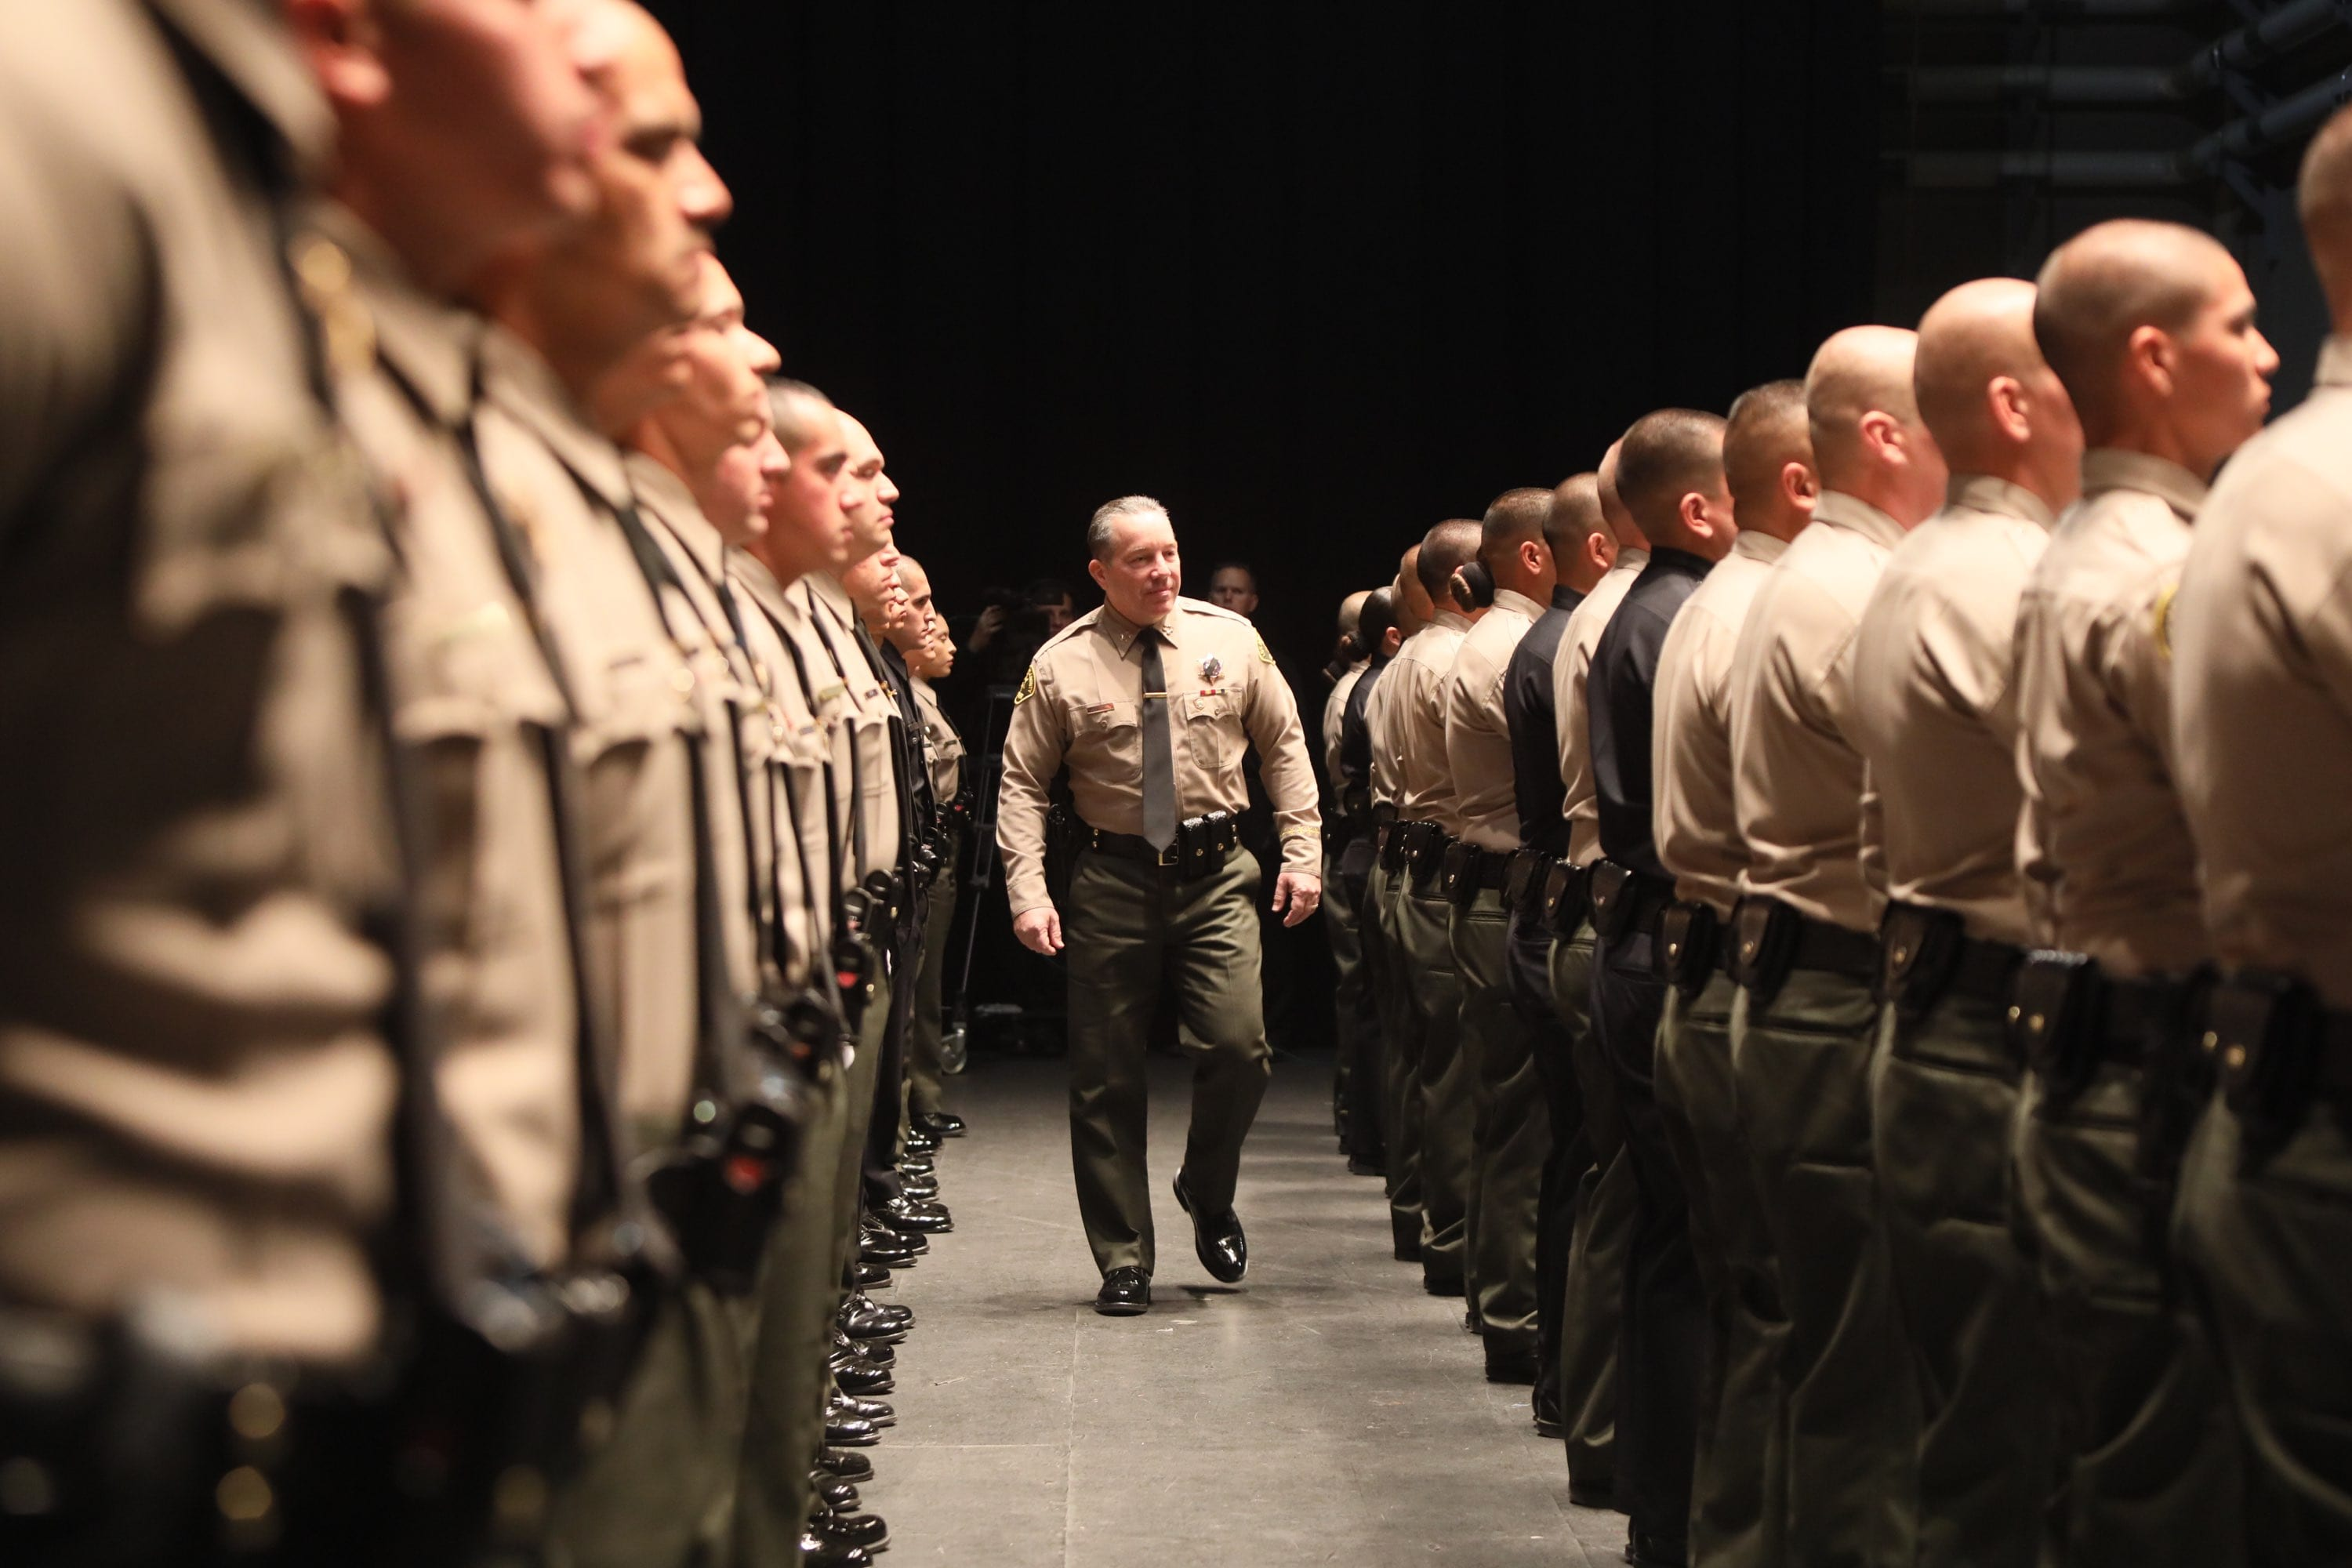 March 26: Oversight Panel to Focus on LASD Secret Subgroups